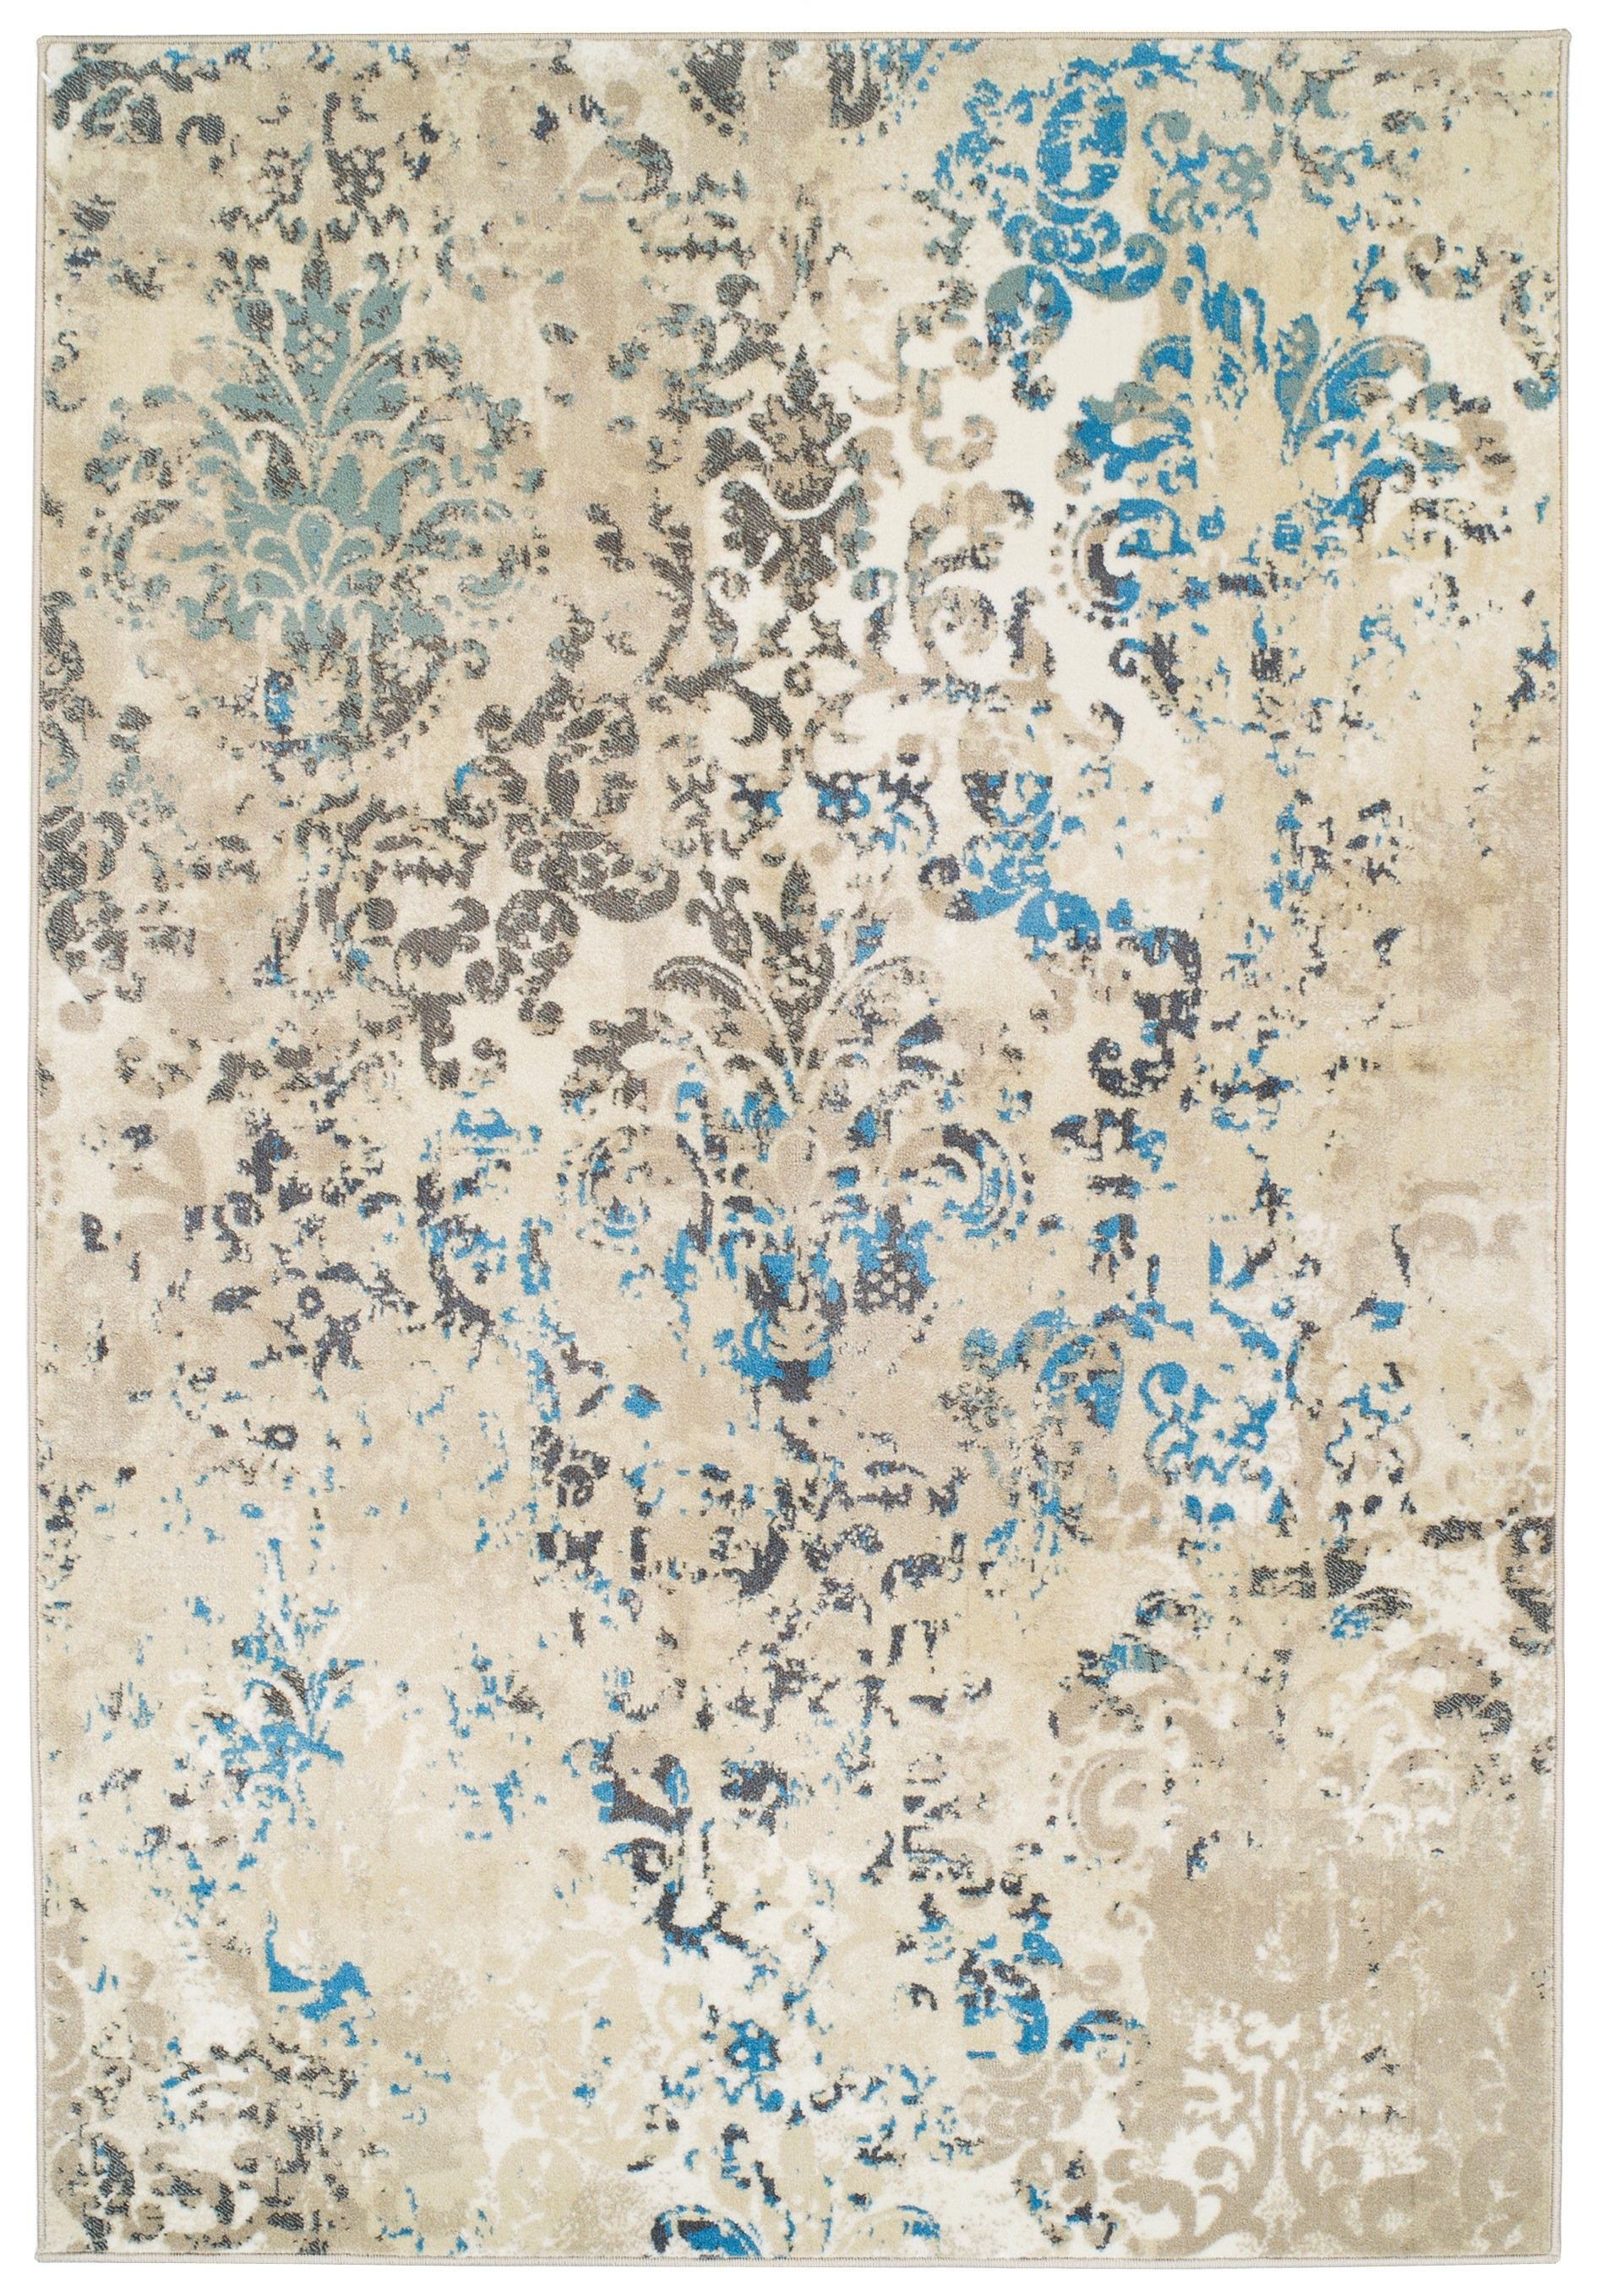 Premium High Quality Rug Large Rugs For Dining Rooms 8 By